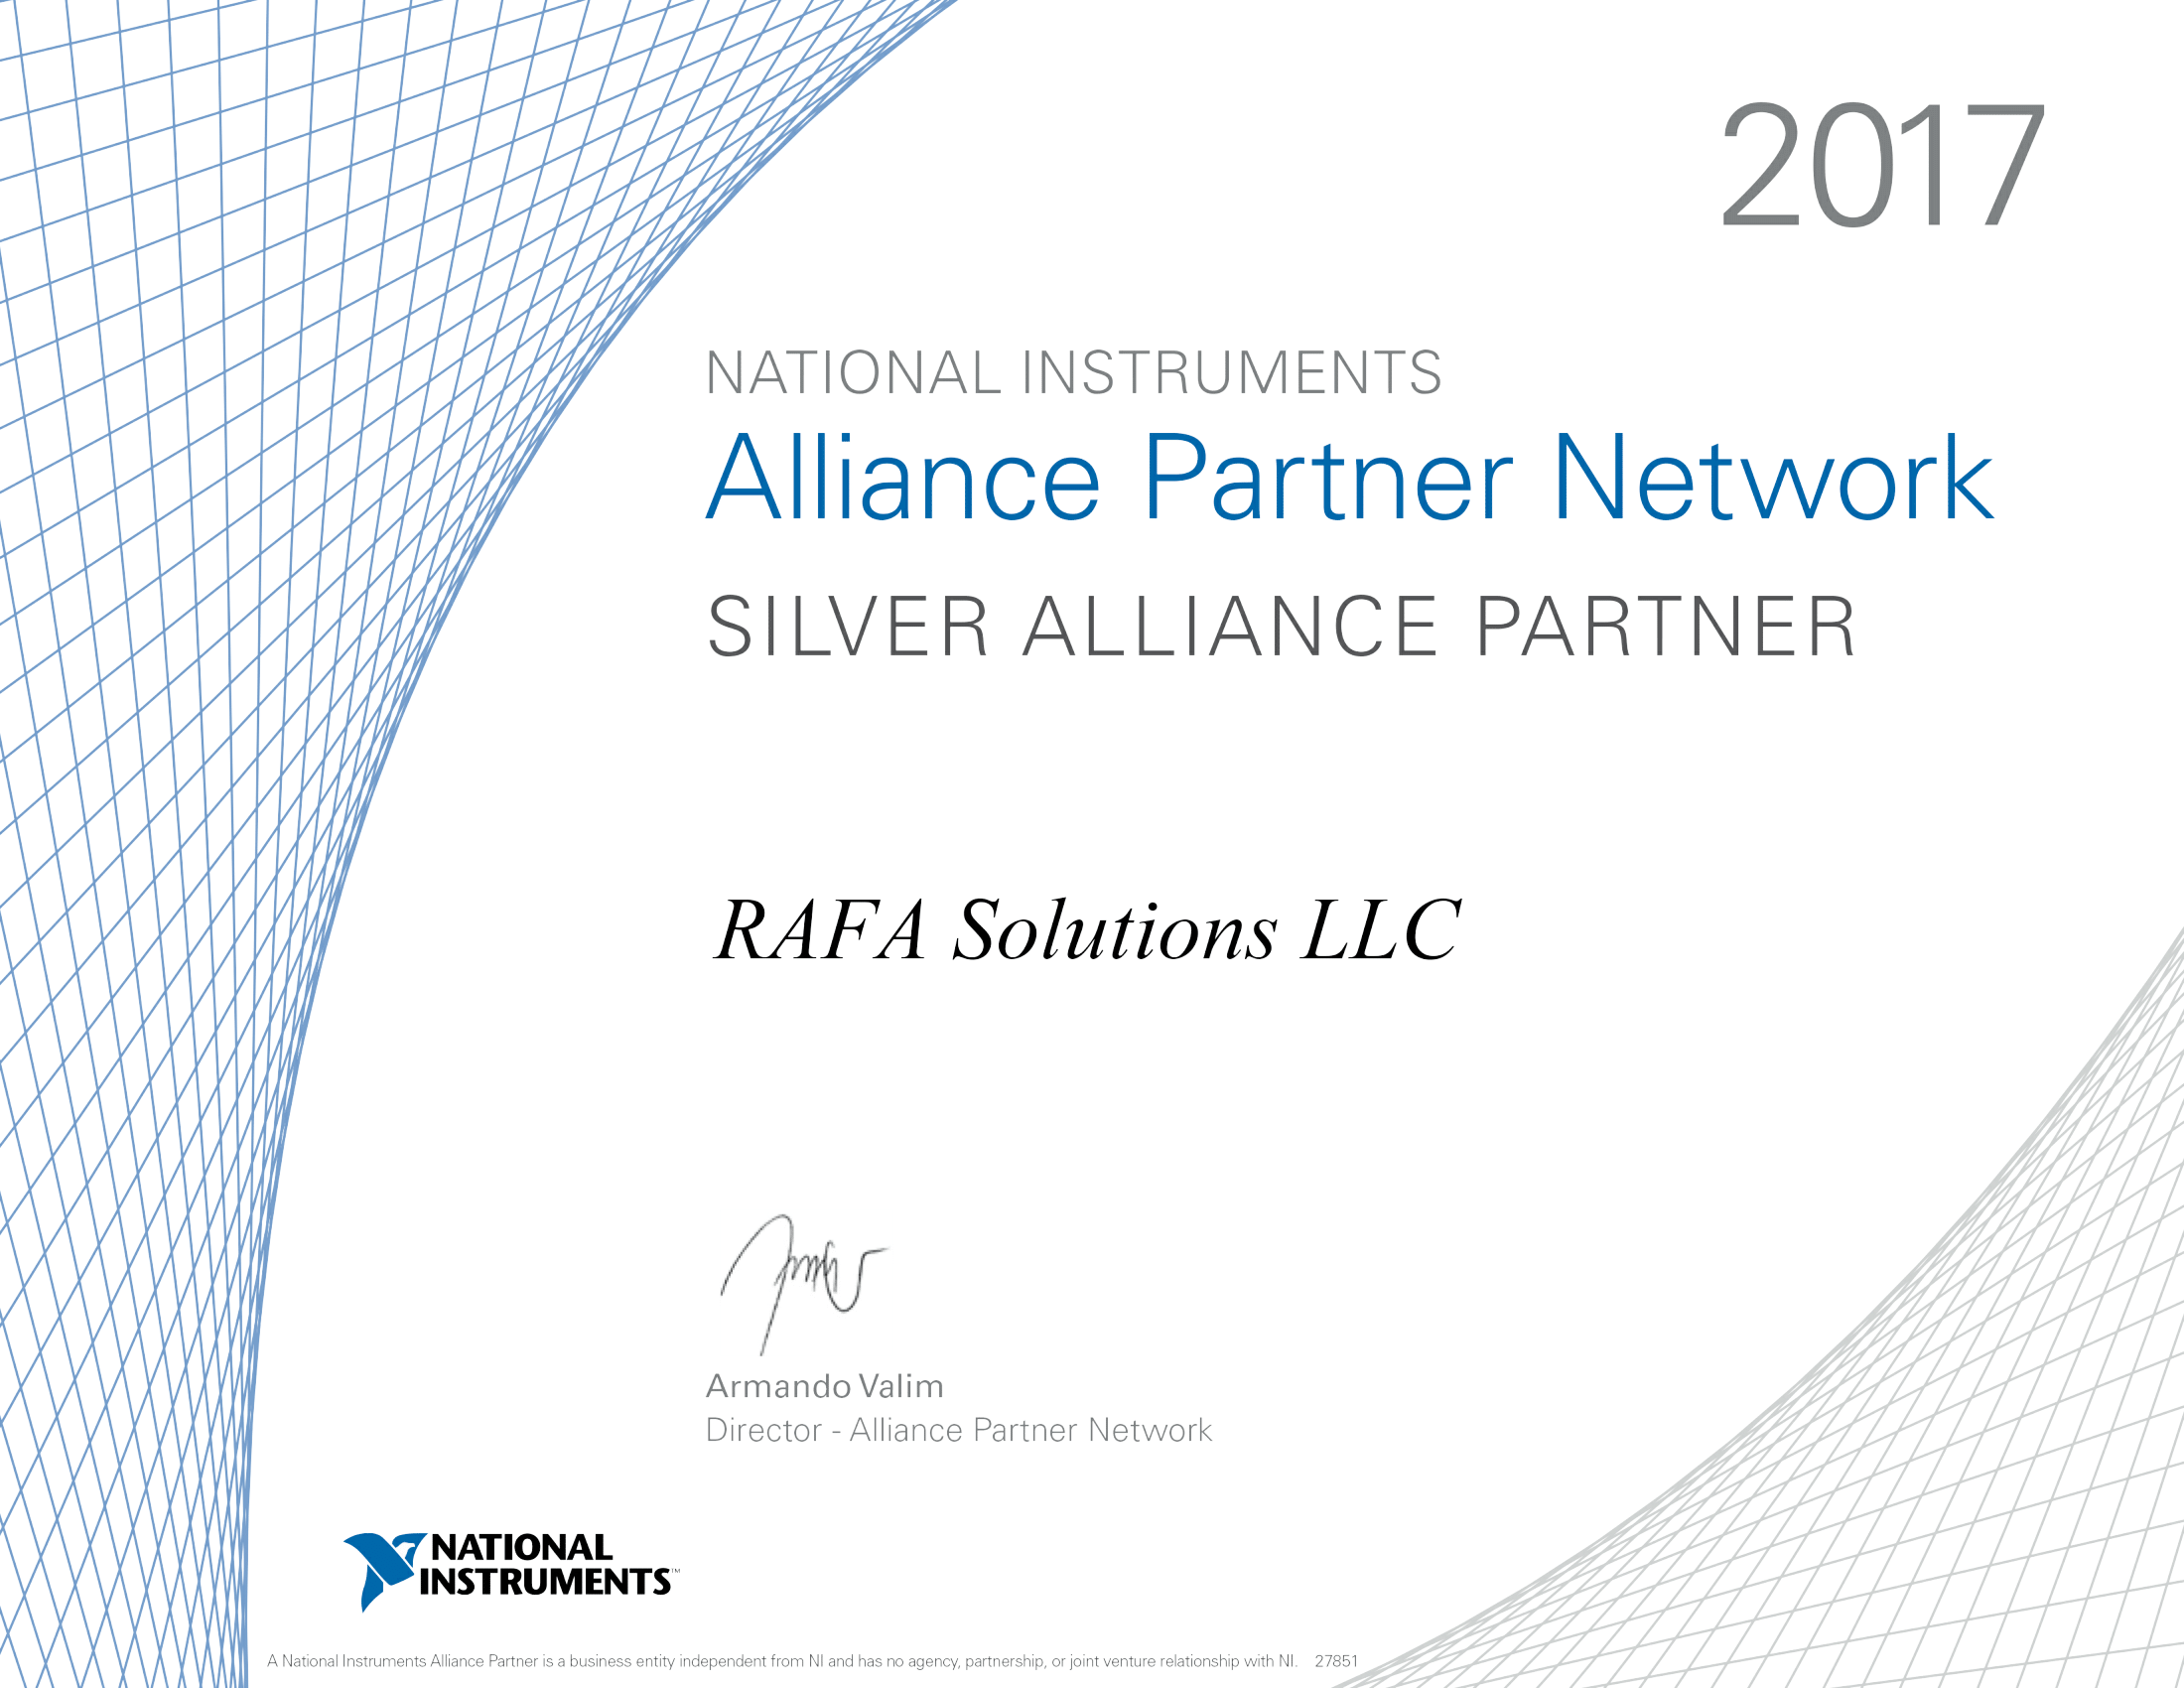 APN_Membership_Silver_Alliance_Partner_Program_Certificate_IA-1